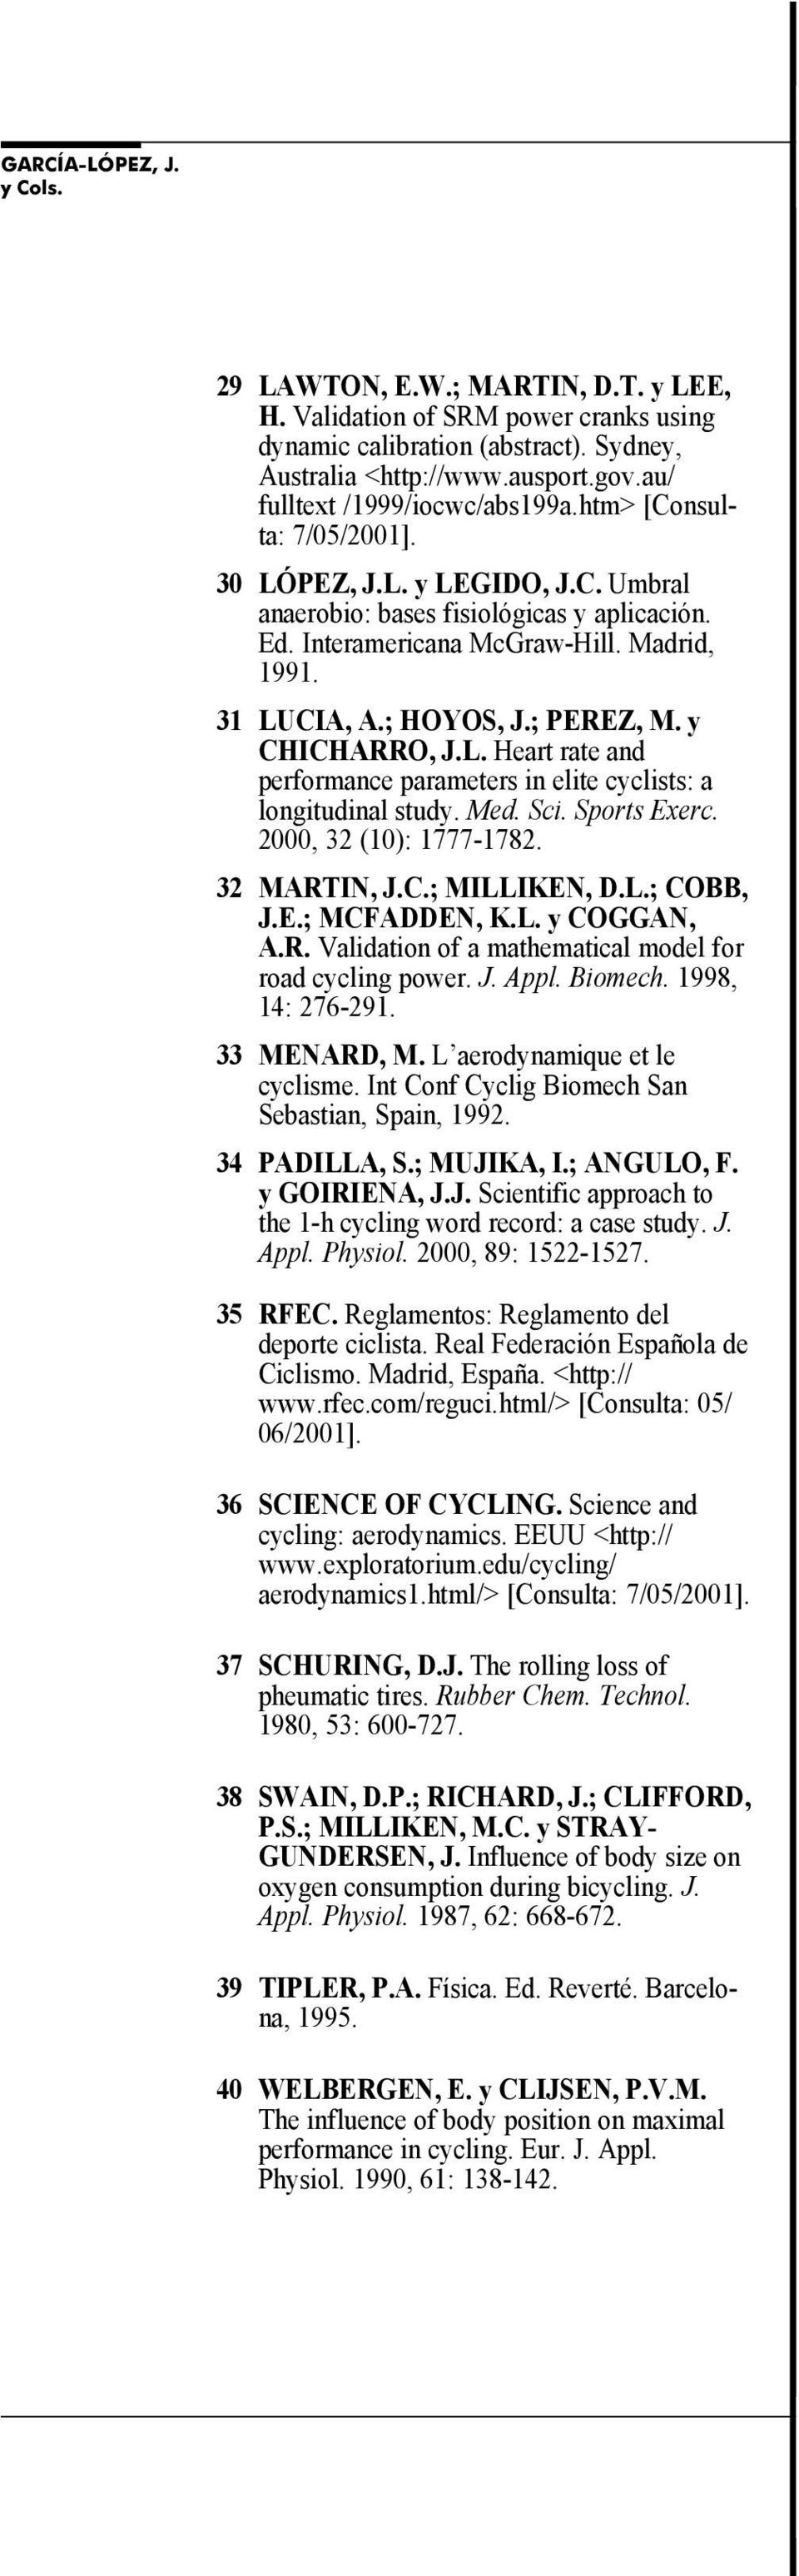 31 LUCIA, A.; HOYOS, J.; PEREZ, M. y CHICHARRO, J.L. Heart rate and performance parameters in elite cyclists: a longitudinal study. M e d. S c i. S p o r t s E x e r c. 2000, 32 (10): 1777-1782.